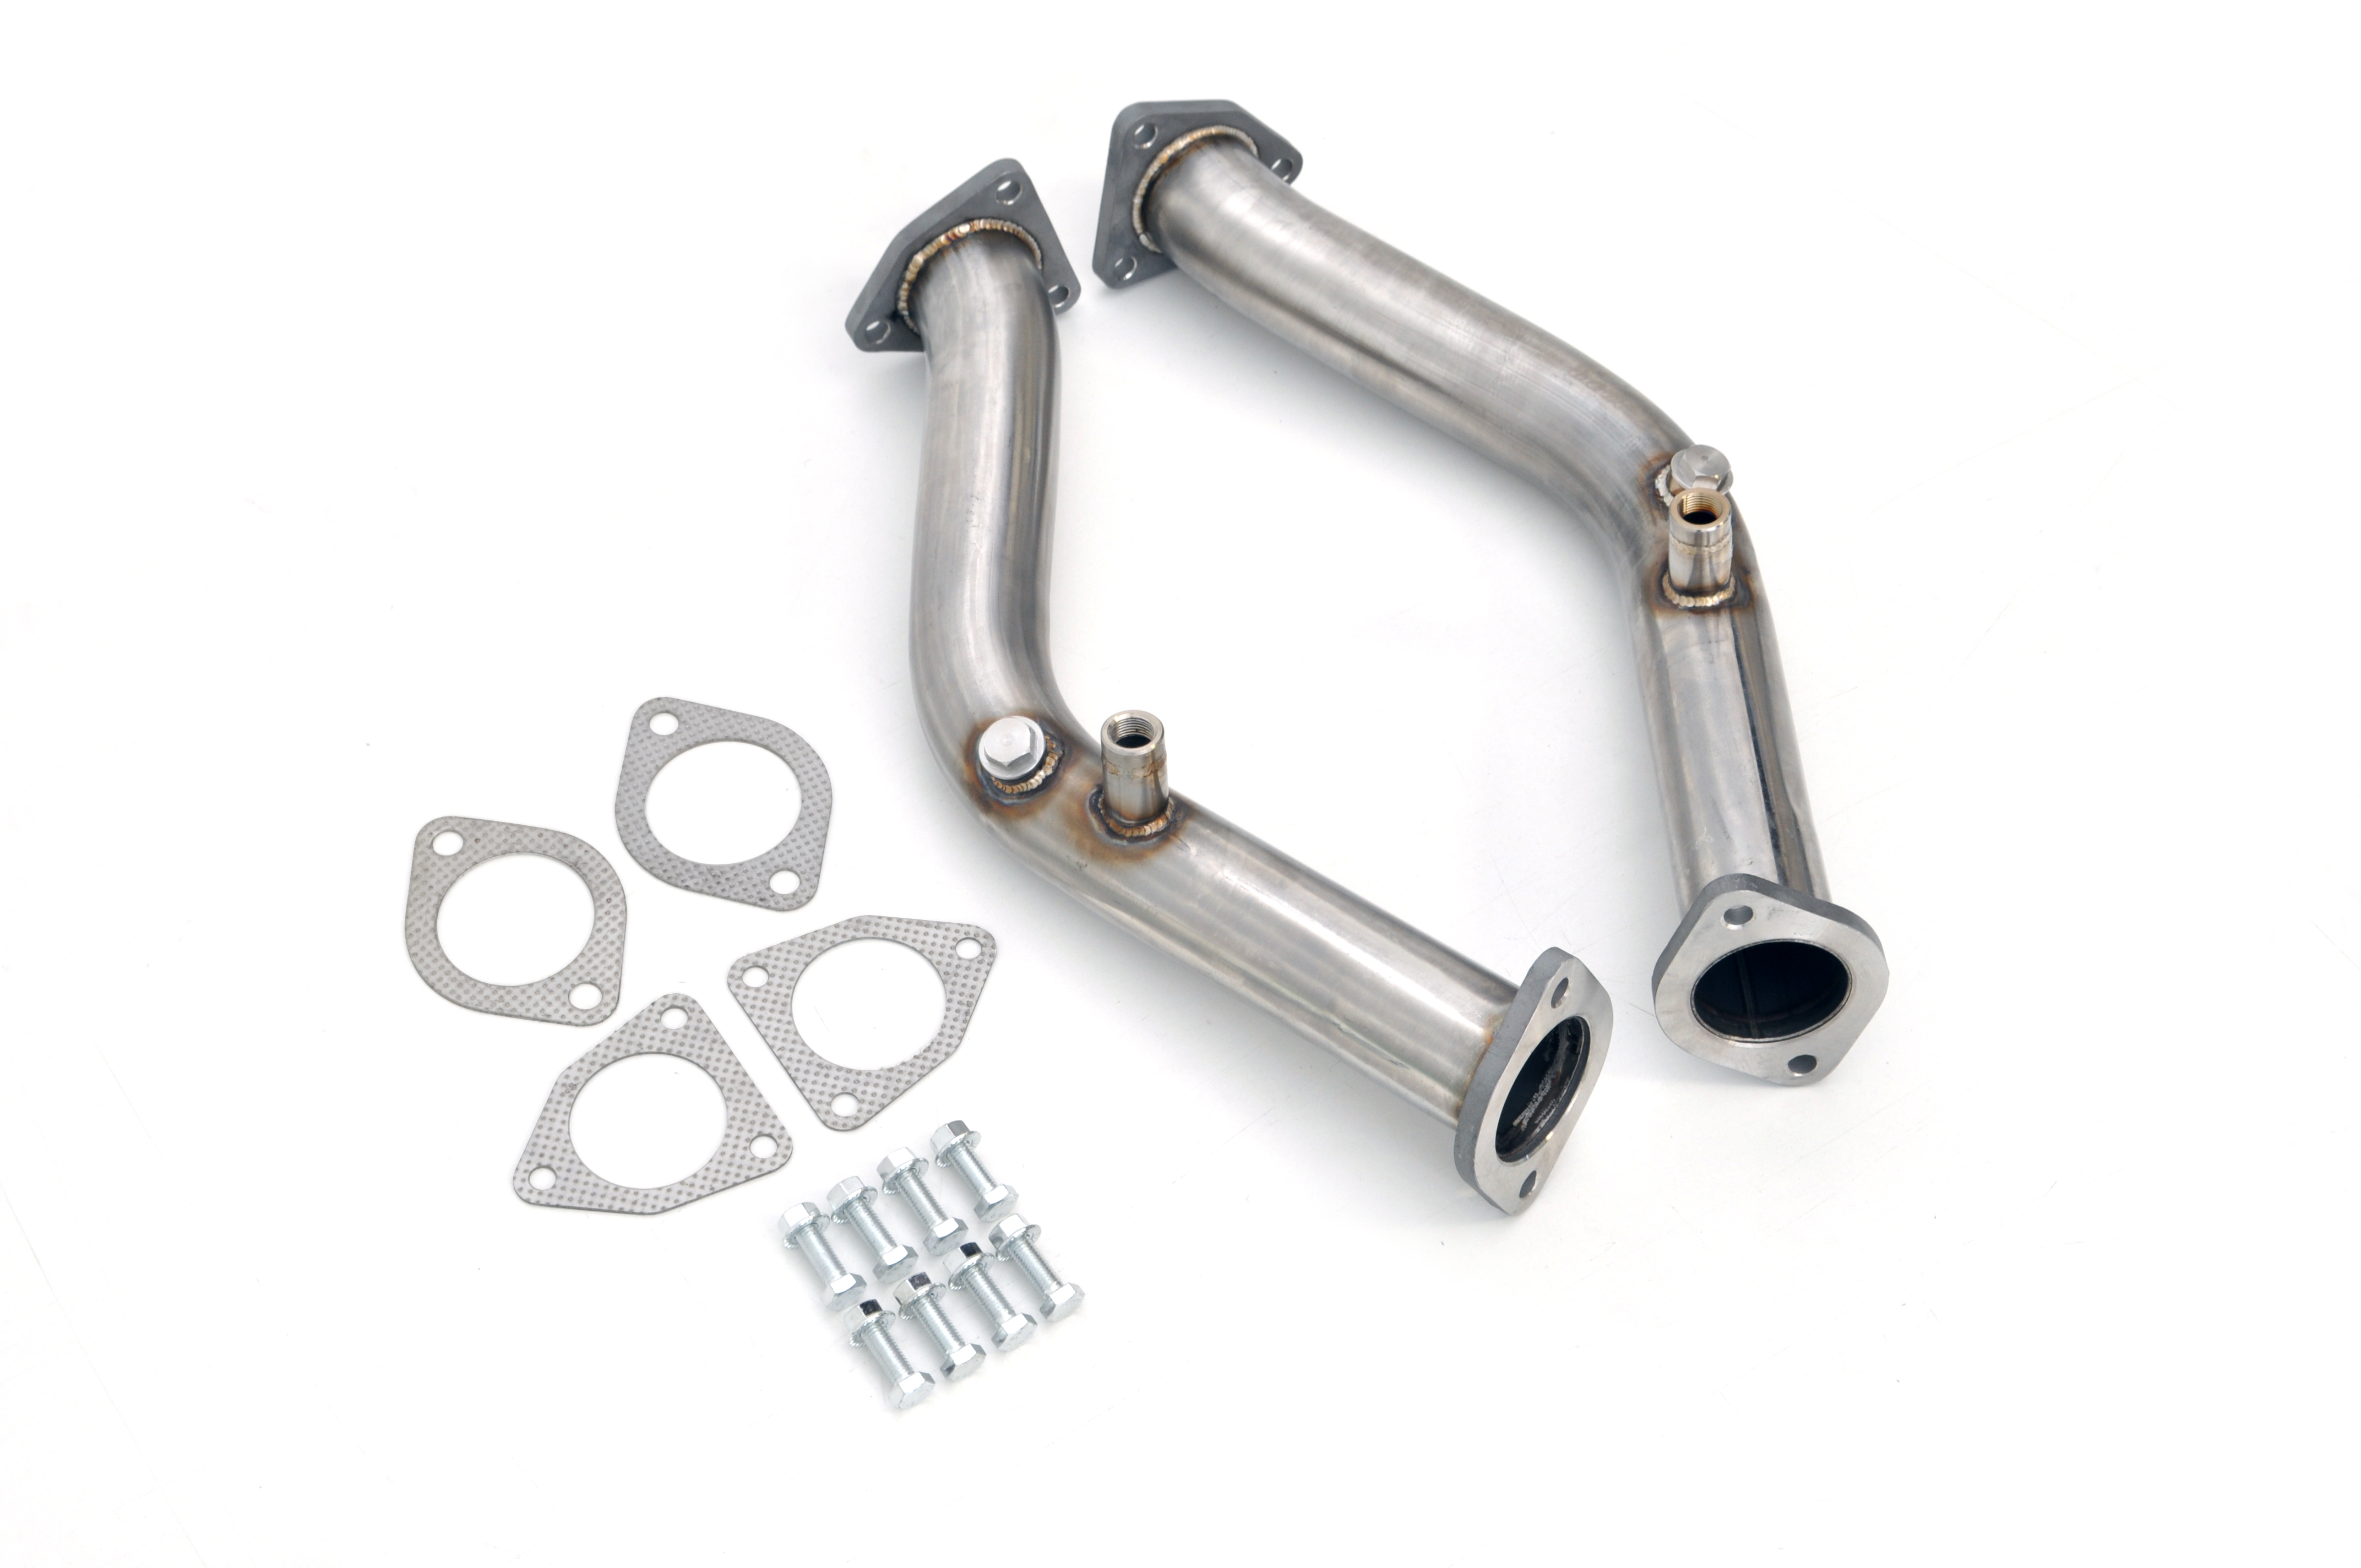 Berk Technology Test Pipes Infiniti G35 2003-2006